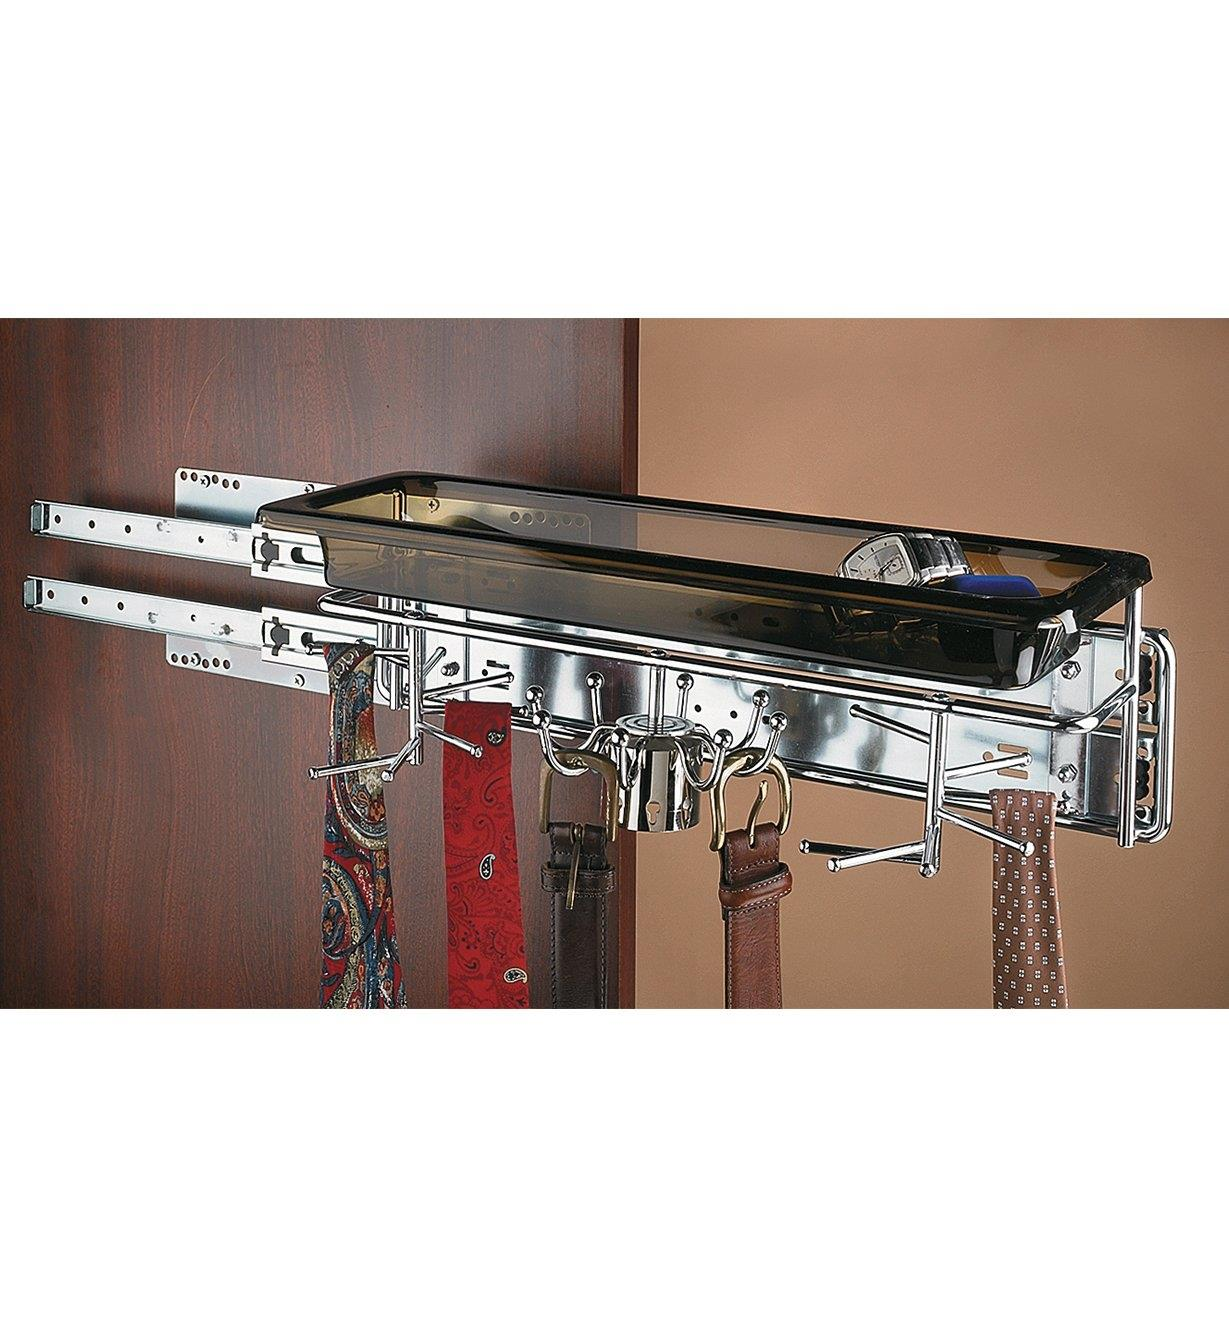 12K2055 - Large Belt & Tie Rack with Tray